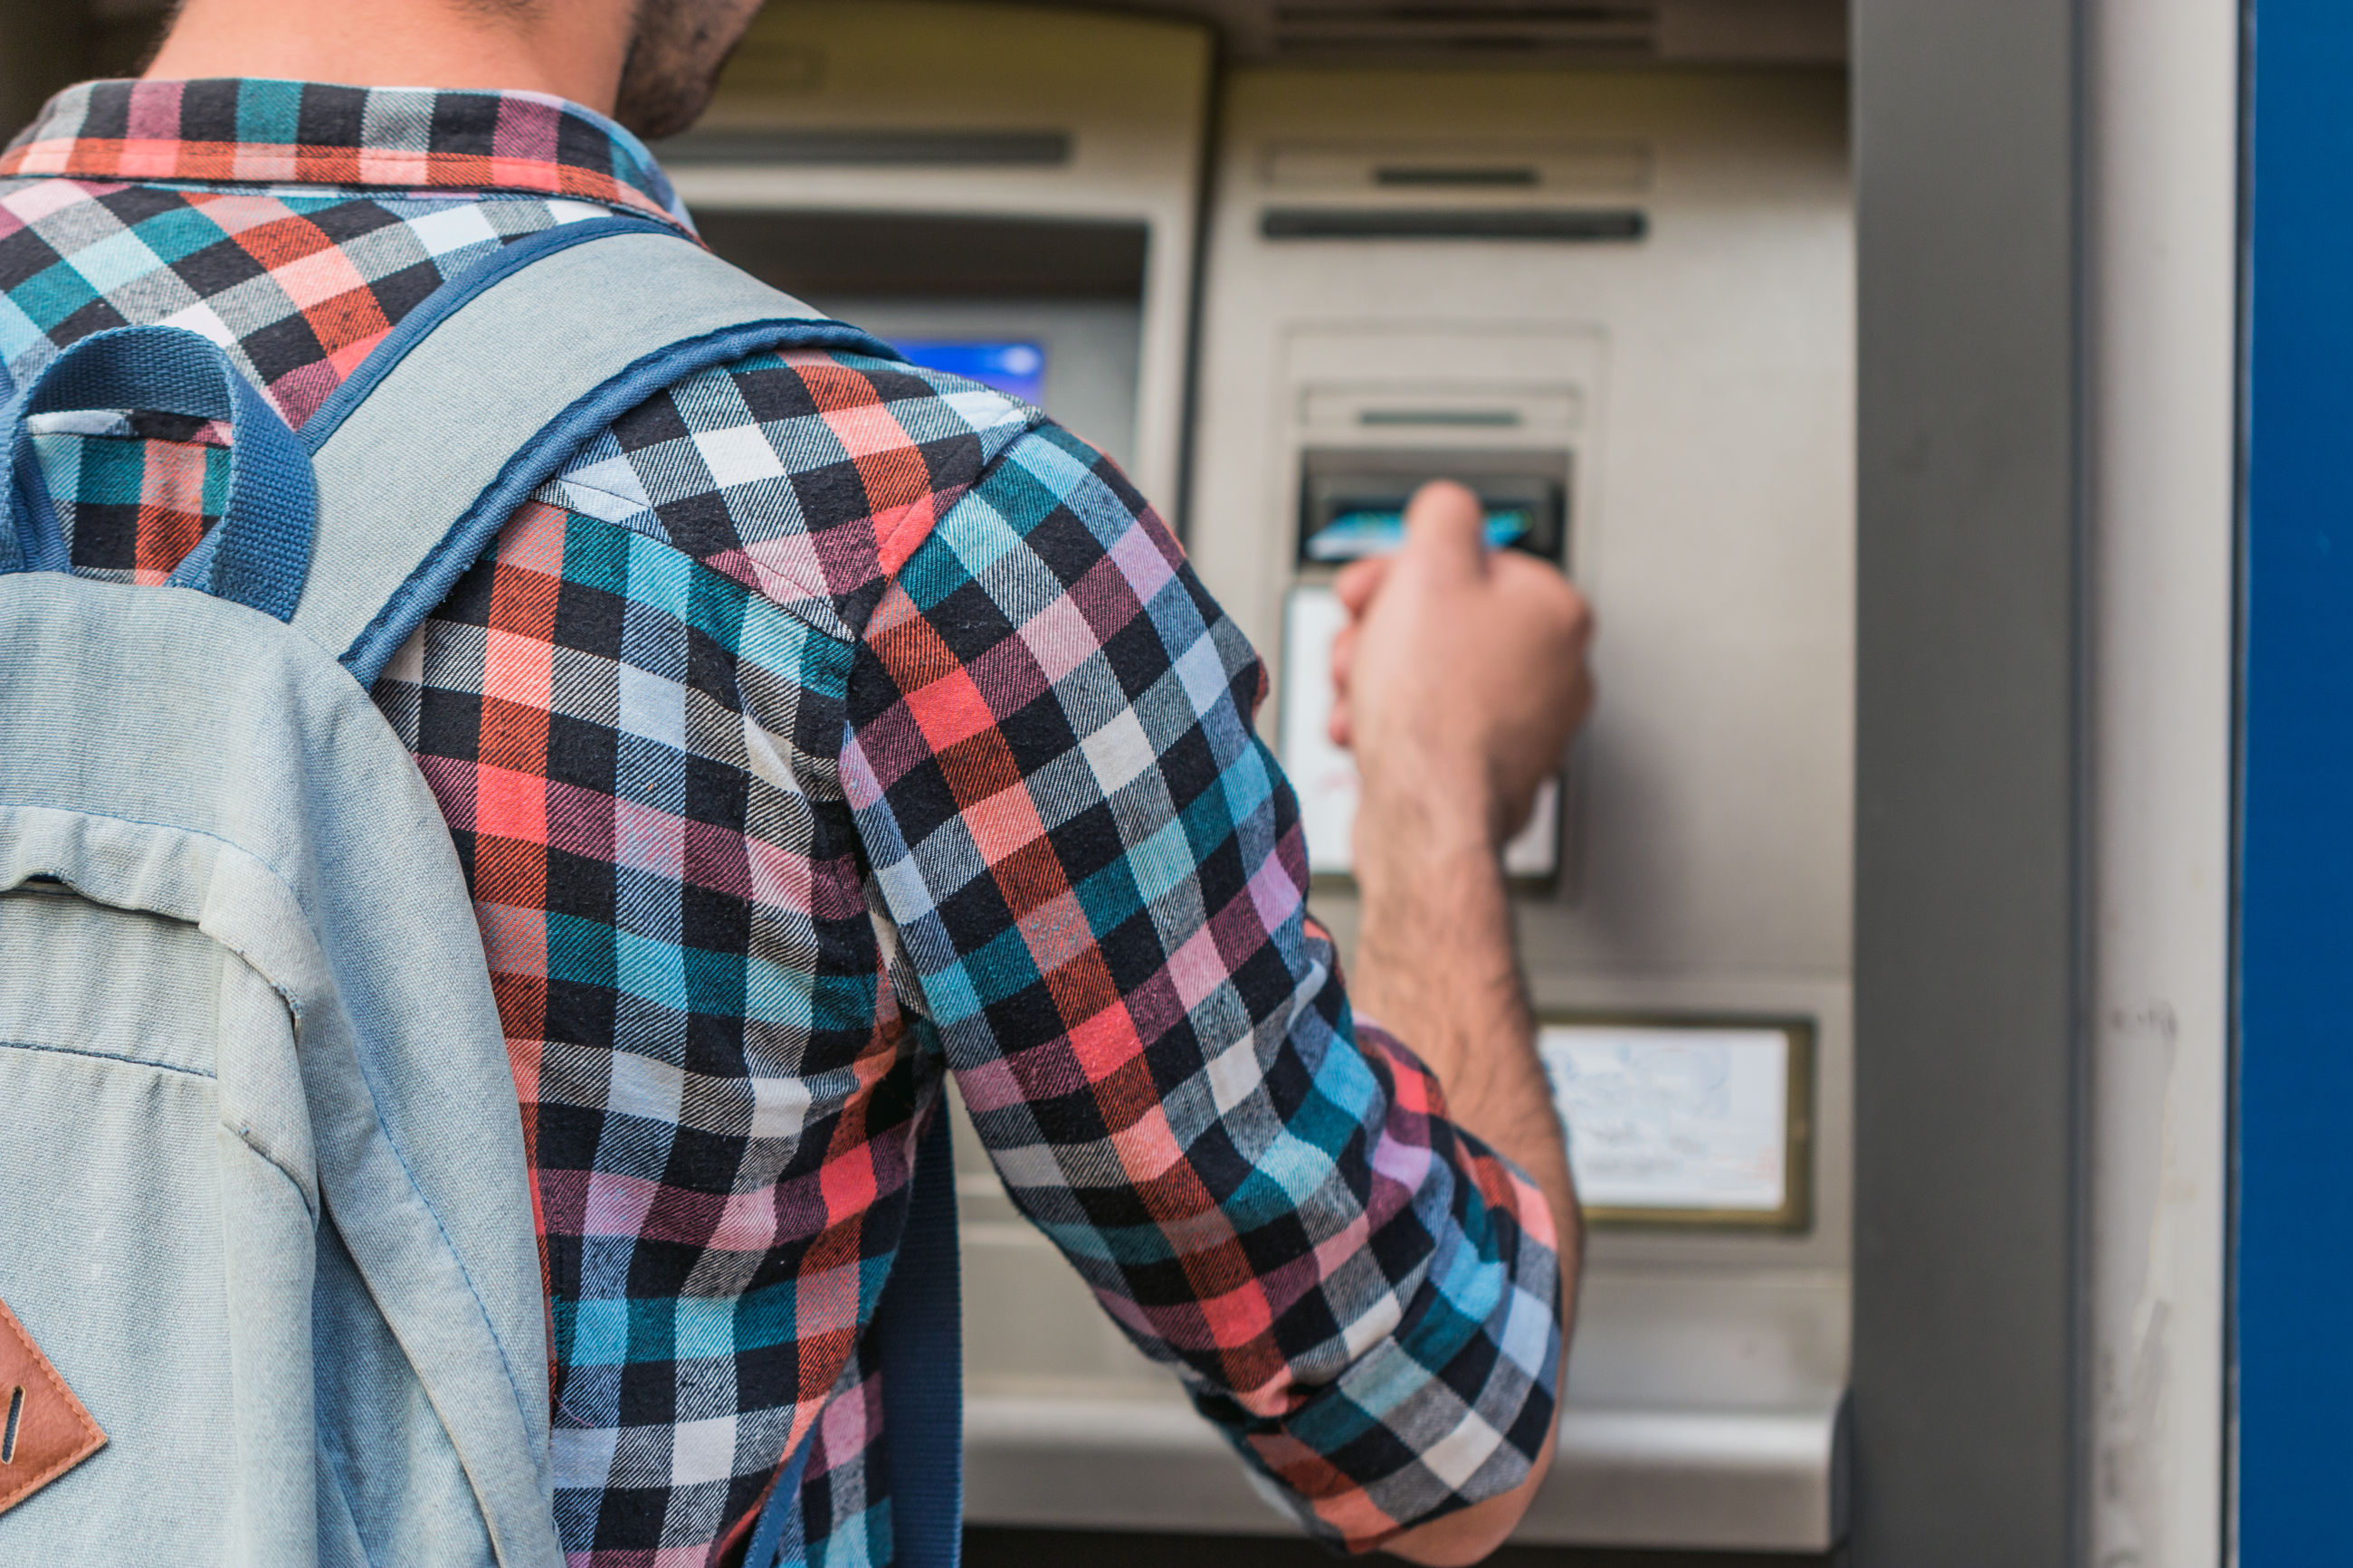 Rear view of man using atm machine